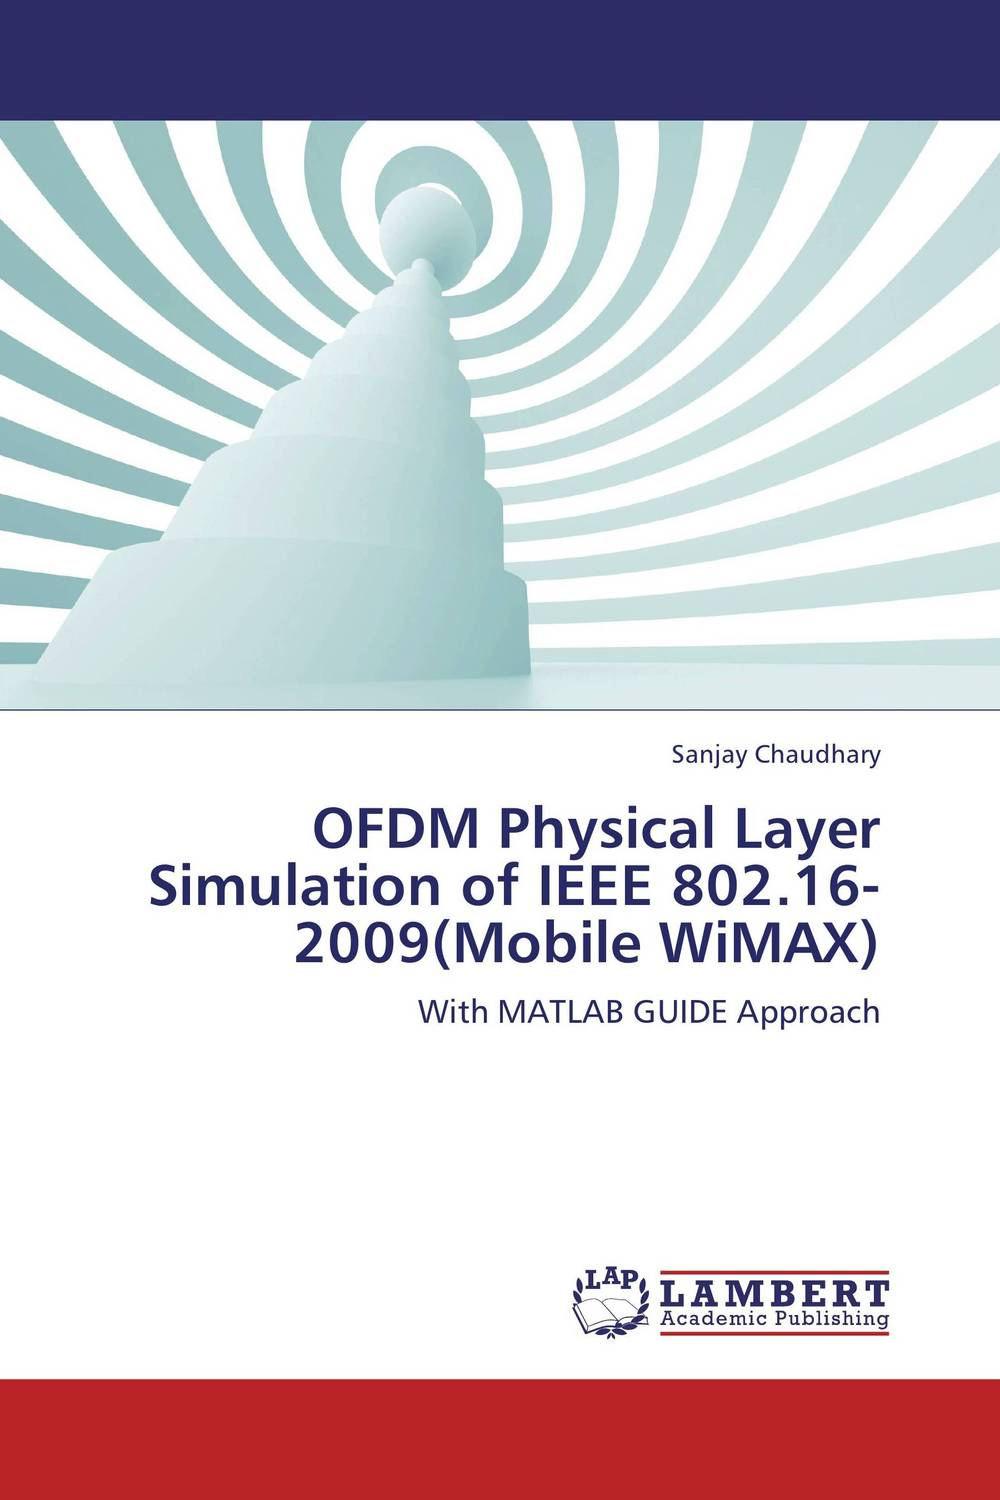 OFDM Physical Layer Simulation of IEEE 802.16-2009(Mobile WiMAX) optimal pll loop filter design for mobile wimax via lmi